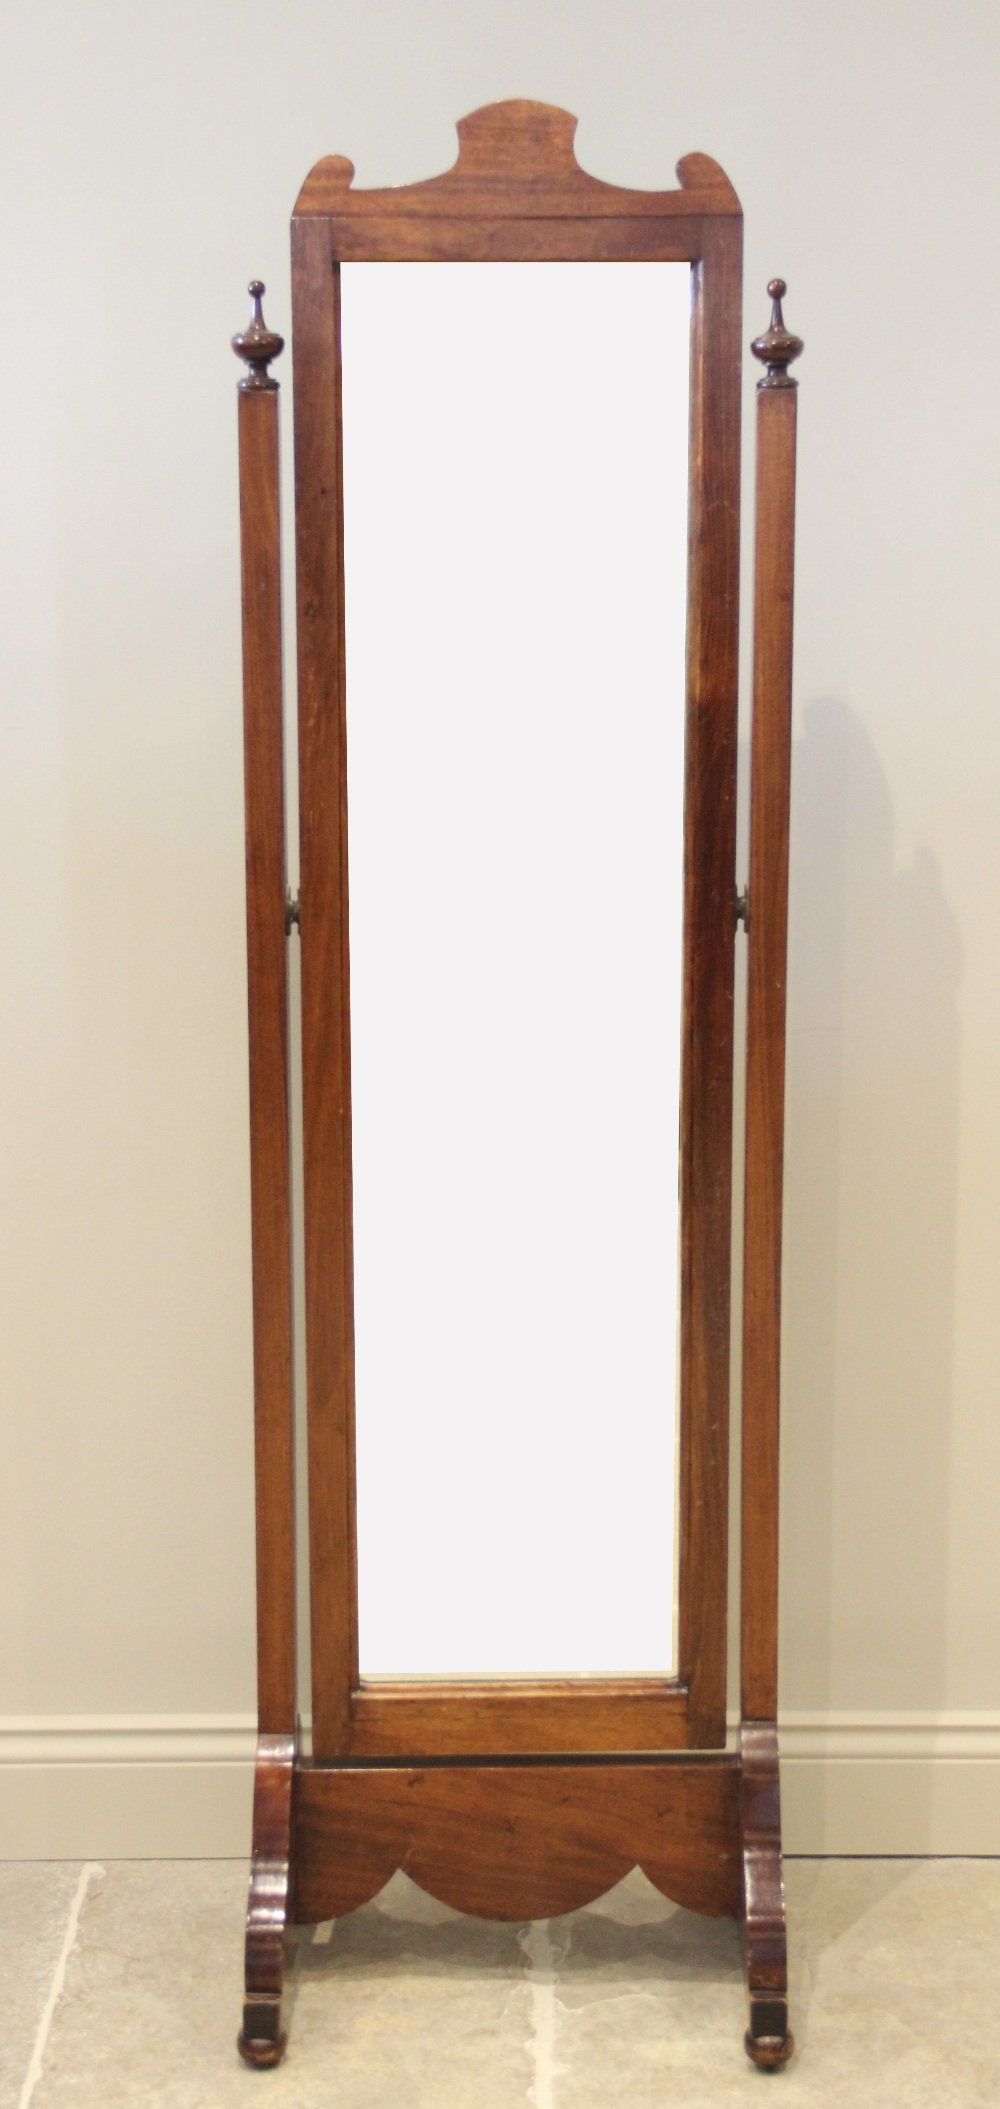 An early 20th century walnut framed cheval mirror, the rectangular bevelled plate raised upon